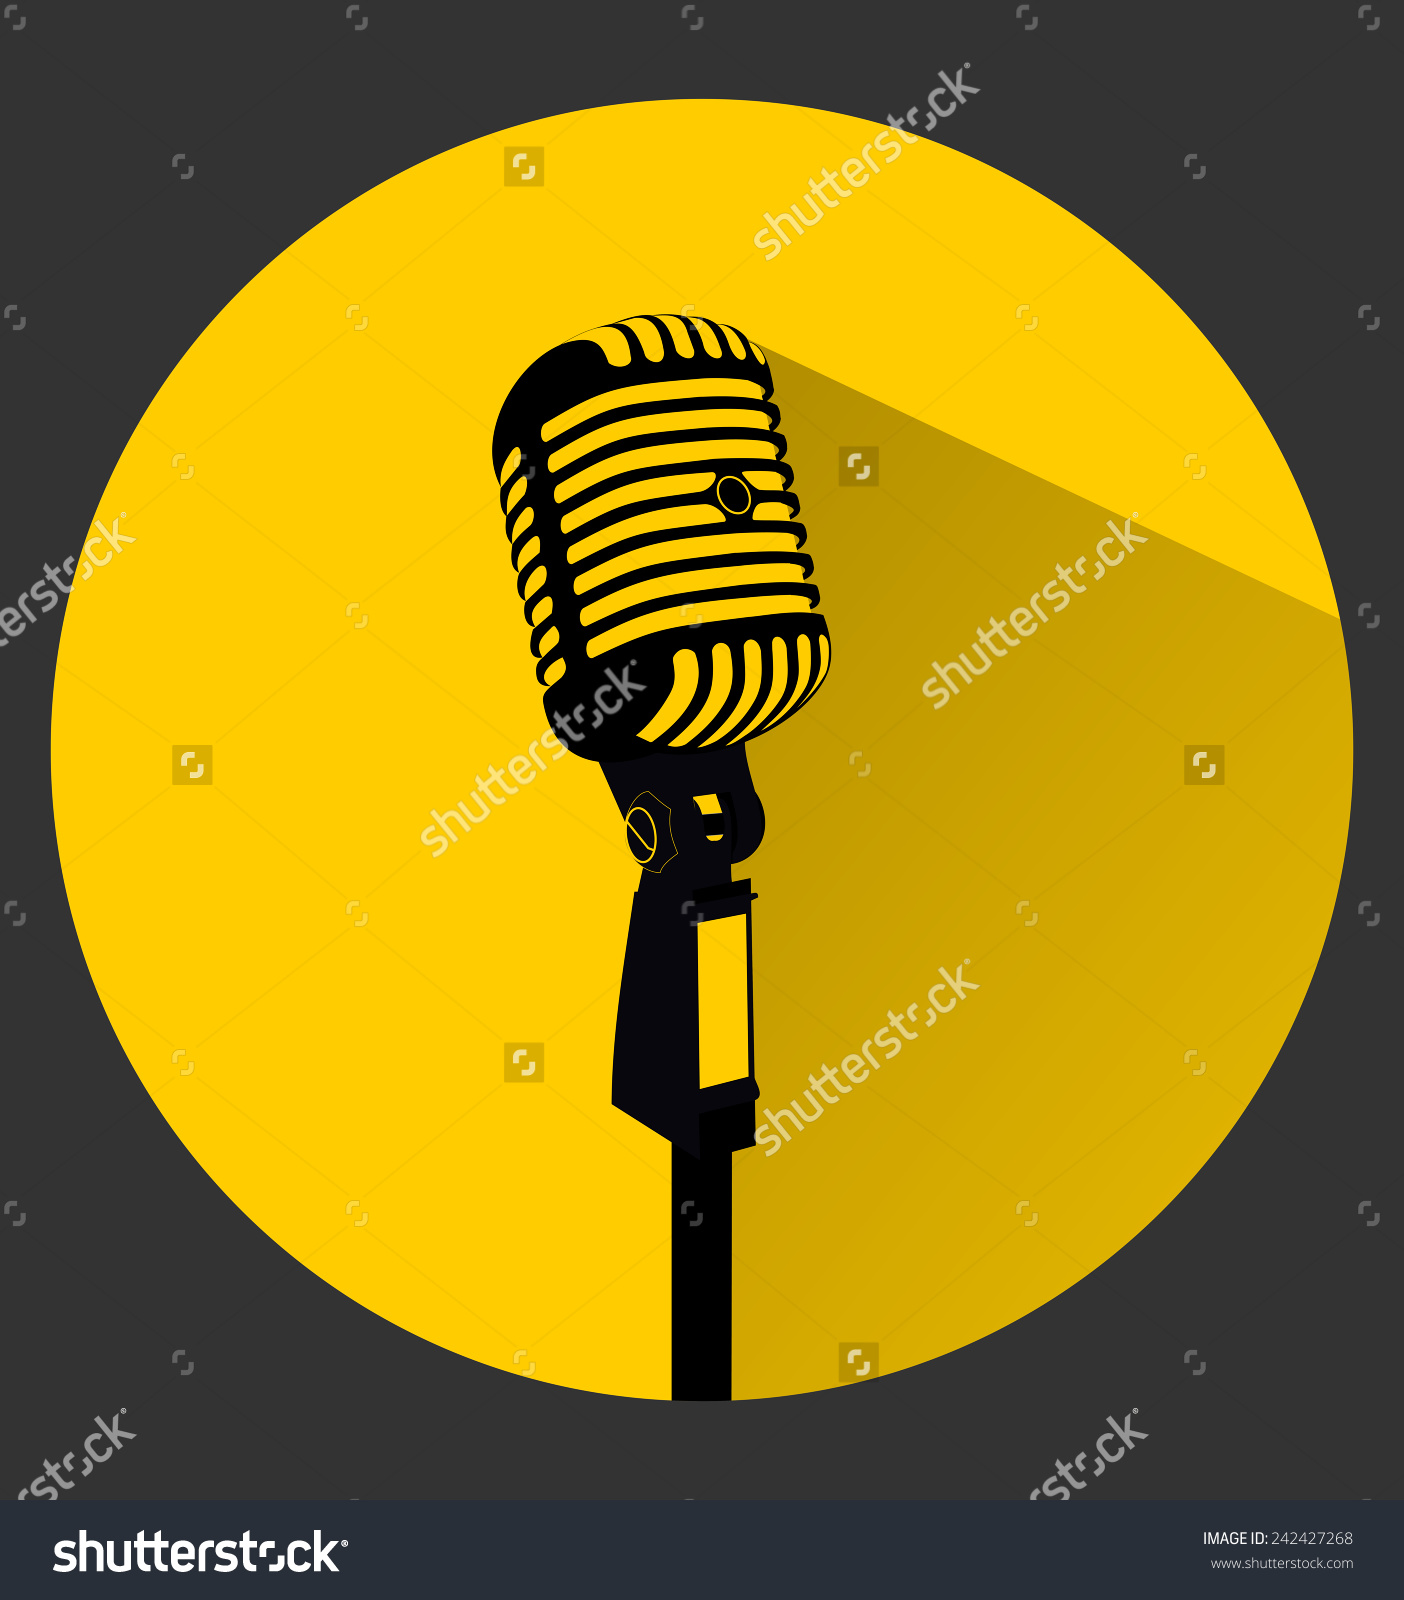 Vintage Black Silhouette Retro Stage Microphone Stock Vector.